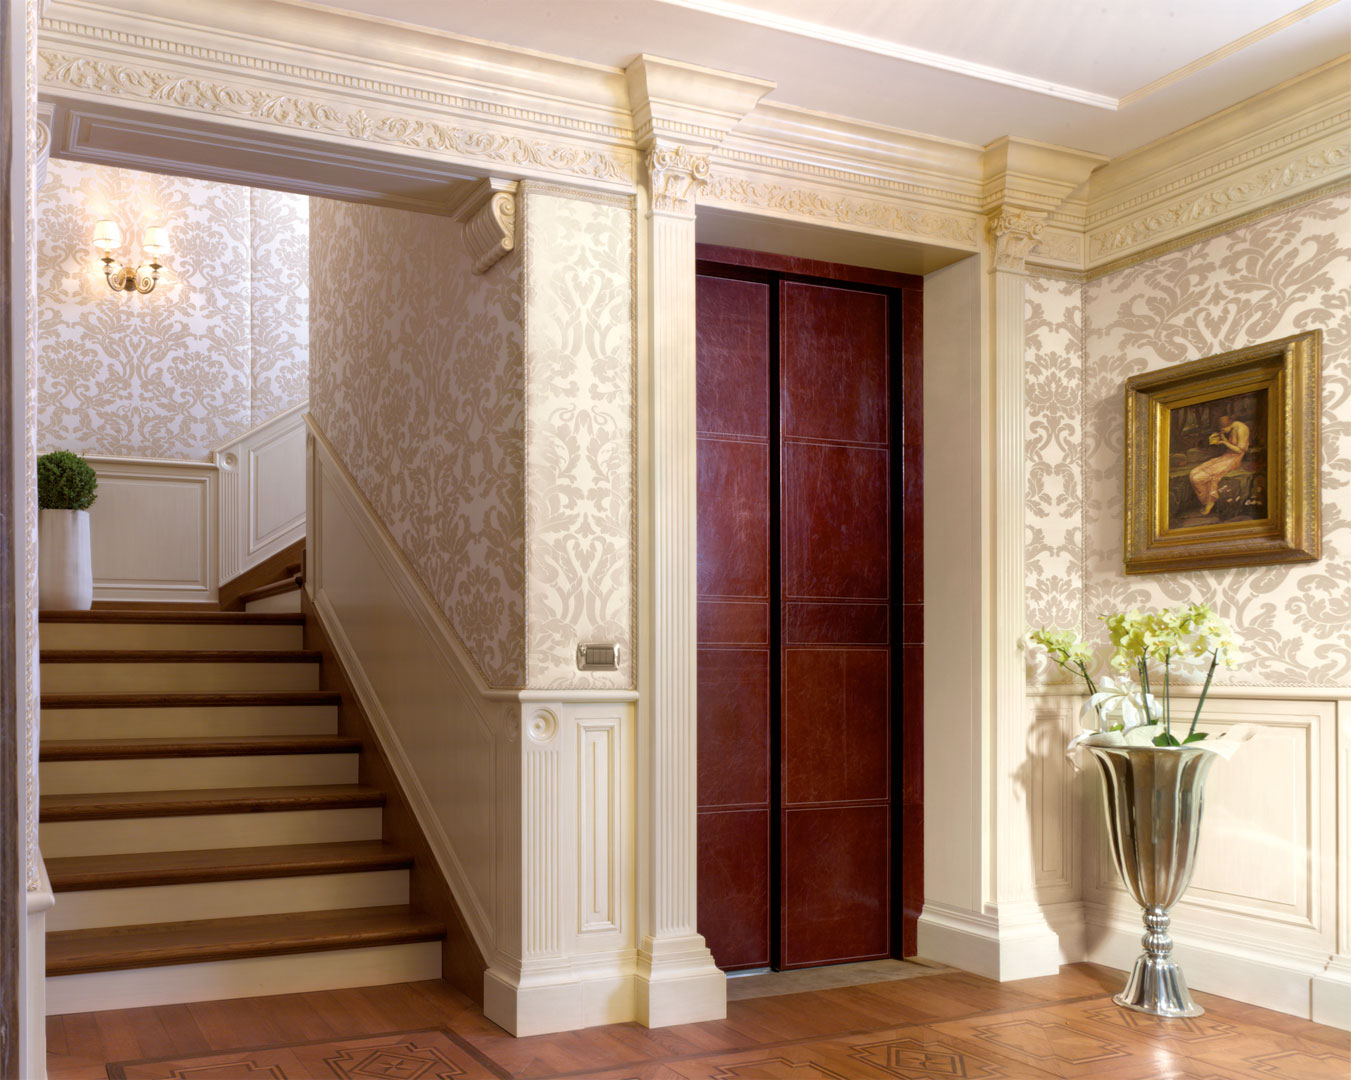 Full height Elizabeth paneling with leather covered door